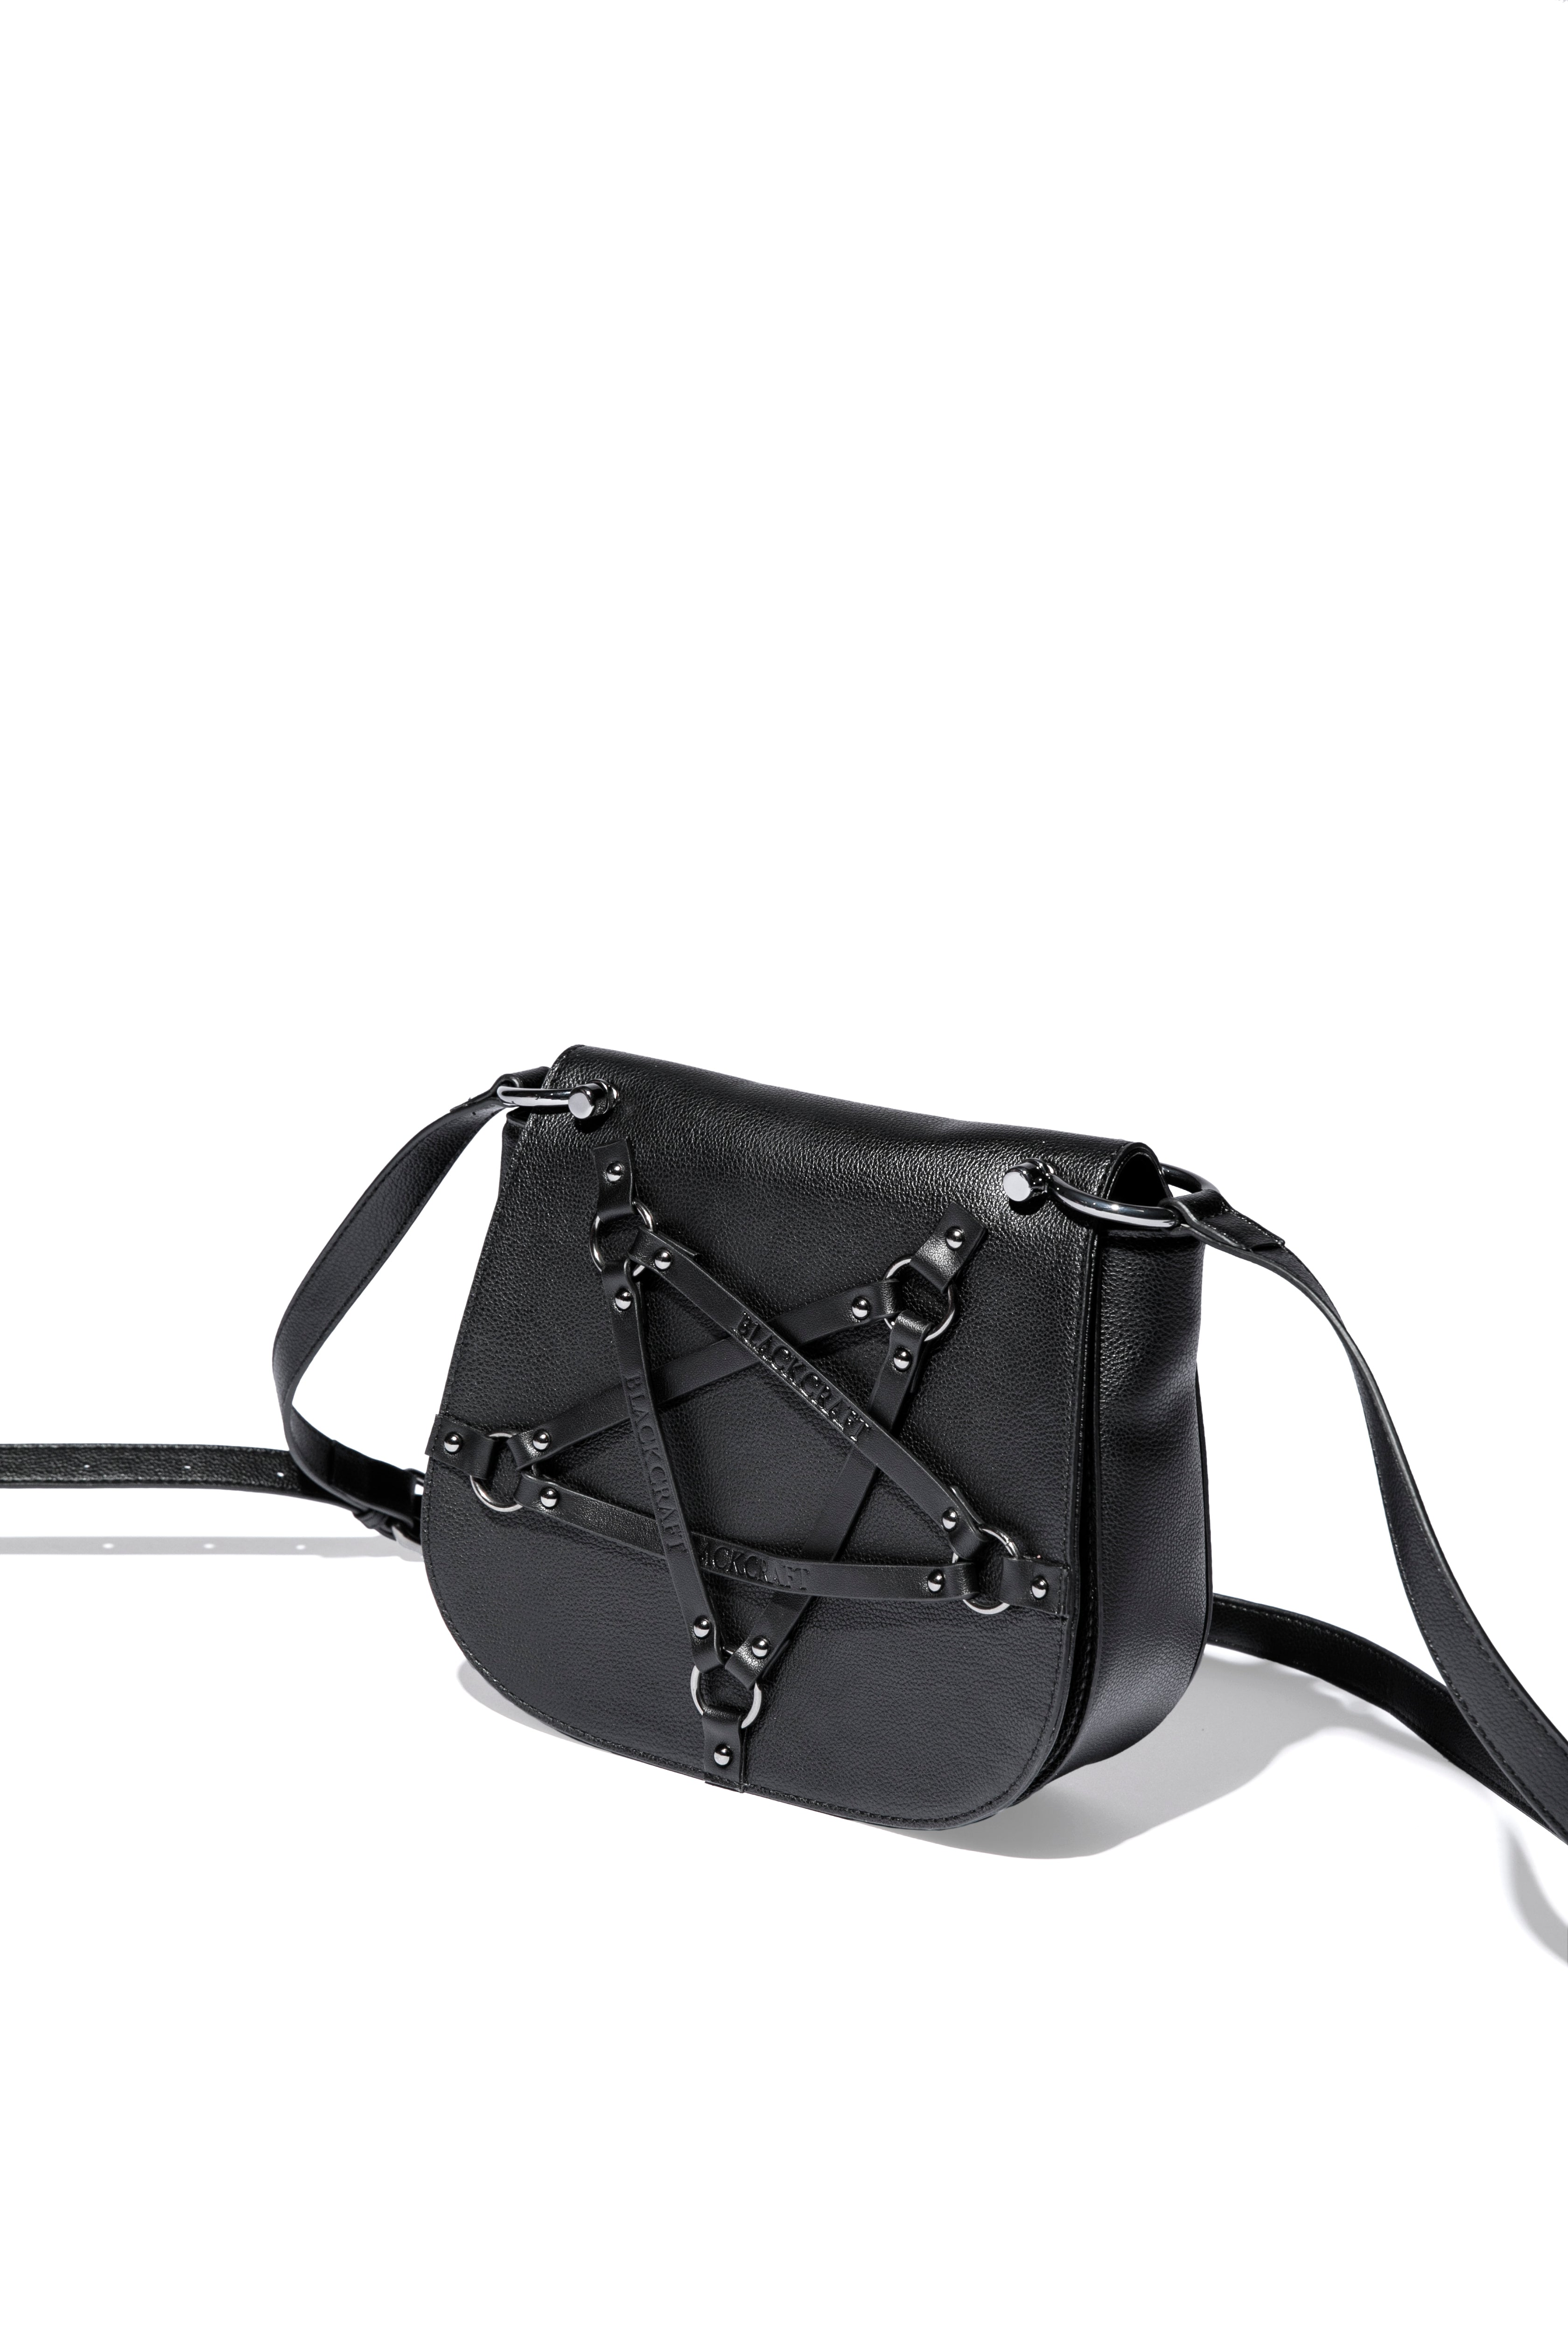 Pentagram Harness Saddle - Crossbody